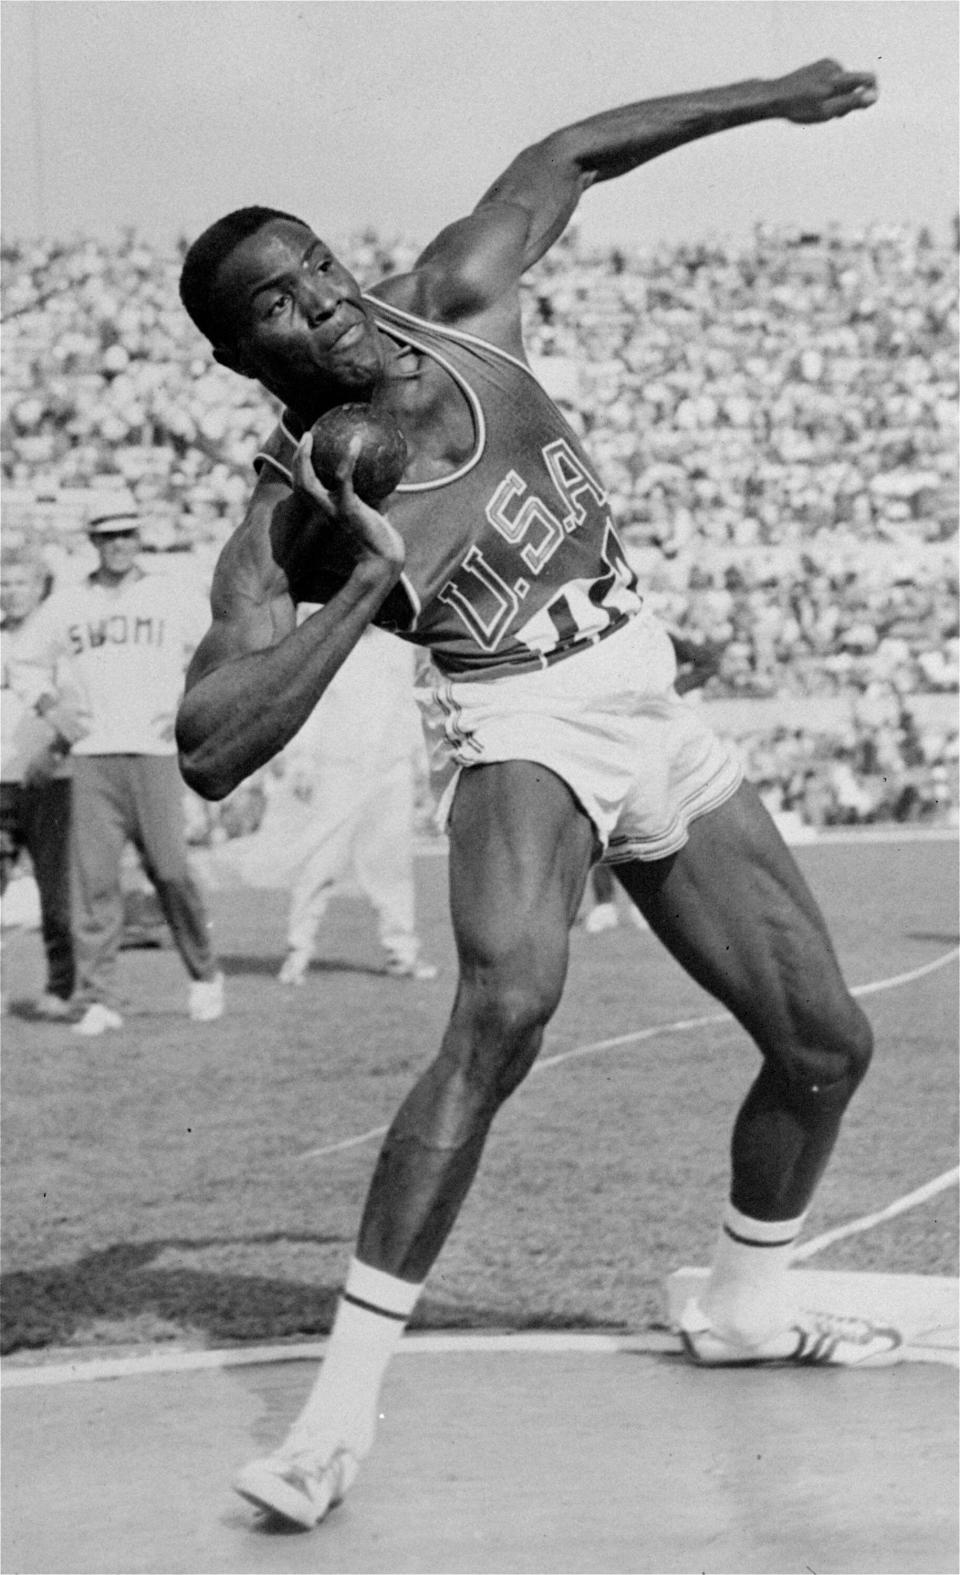 FILE - In this Sept. 5, 1960, file photo, Rafer Johnson of the United States competes in the shot put event of the Olympic decathlon competition in Rome, Italy. Rafer heaved the shot 51 feet 10 3/4 inches to score 976 points and lead the field in this event. Rafer Johnson, who won the decathlon at the 1960 Rome Olympics and helped subdue Robert F. Kennedy's assassin in 1968, died Wednesday, Dec. 2, 2020. He was 86. He died at his home in the Sherman Oaks section of Los Angeles, according to family friend Michael Roth.(AP Photo/FIle